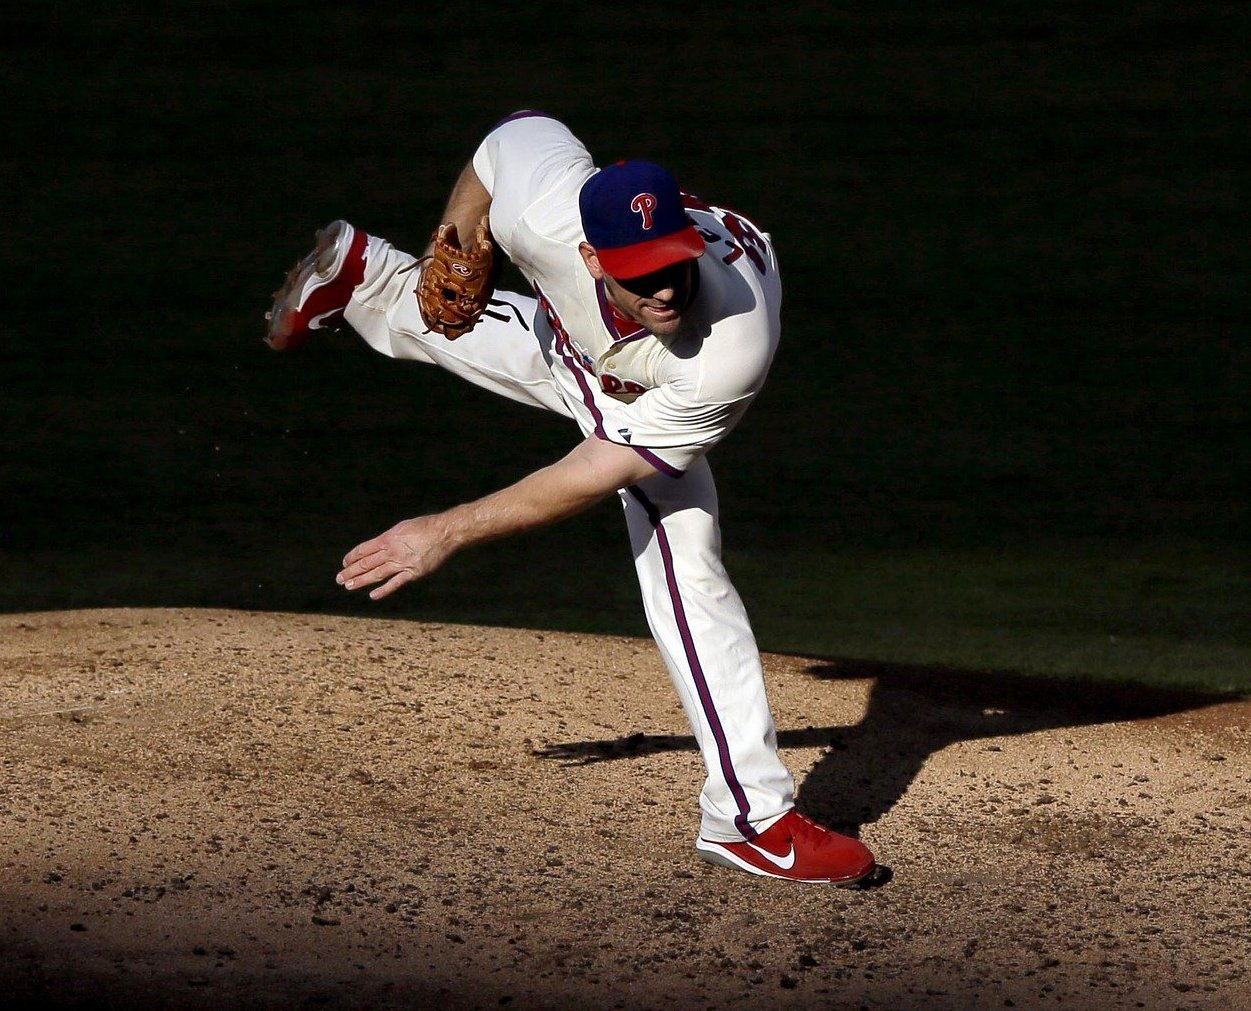 Cliff Lee = velocity + pitchability